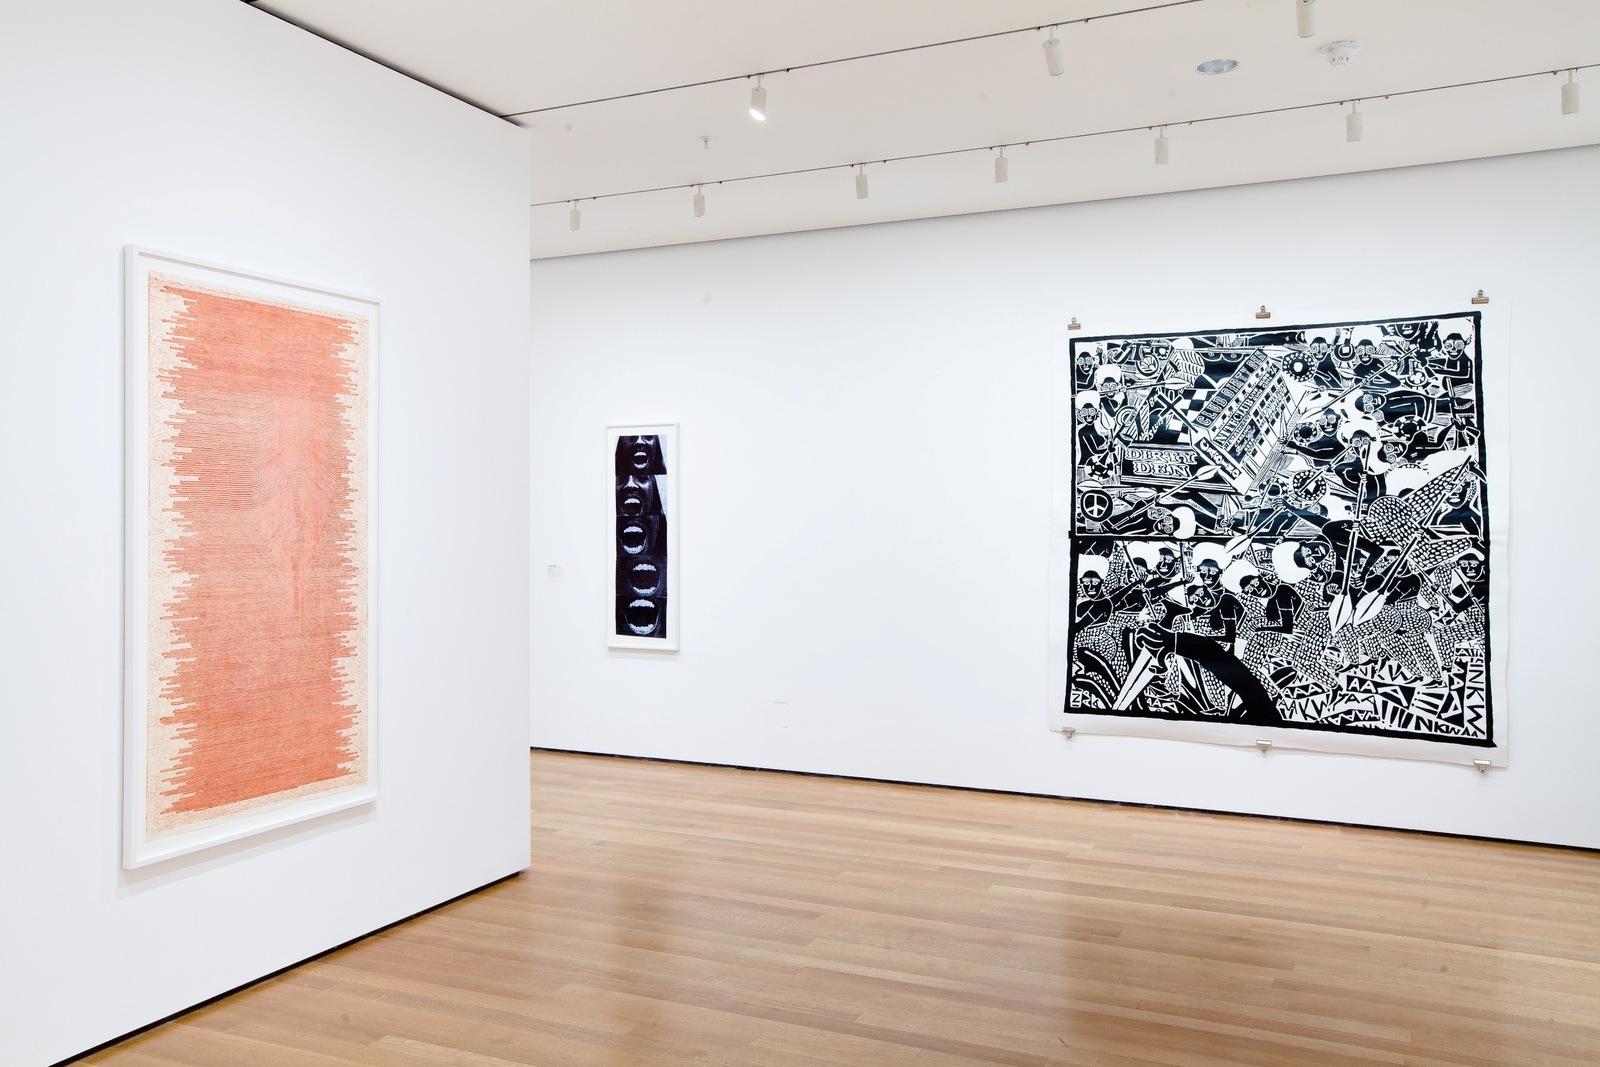 Left to right: Paul Edmunds, The same but different (2001); Ernestine White, Outlet (2010); and Cameron Platter, The Battle of Rorke's Drift at Club Dirty Den (2009) in Impressions from South Africa, 1965 to Now at MoMA image